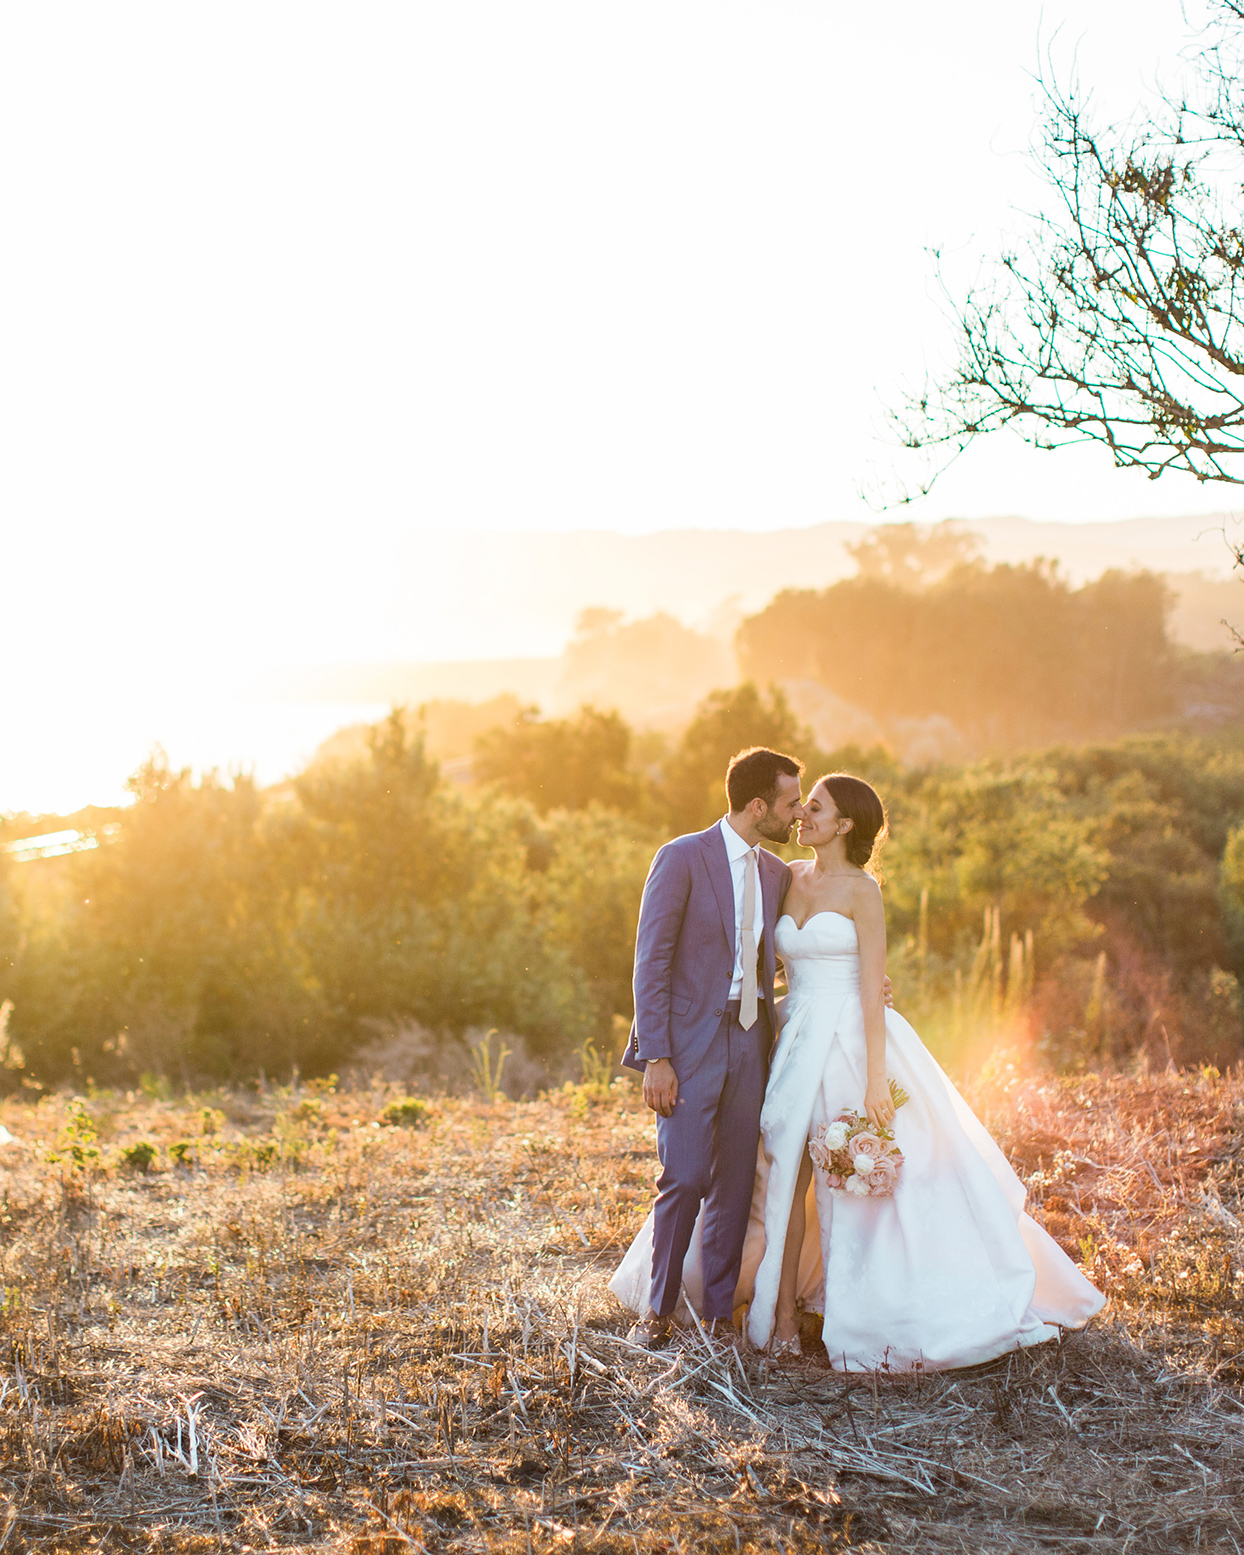 wedding couple kissing in field at golden hour